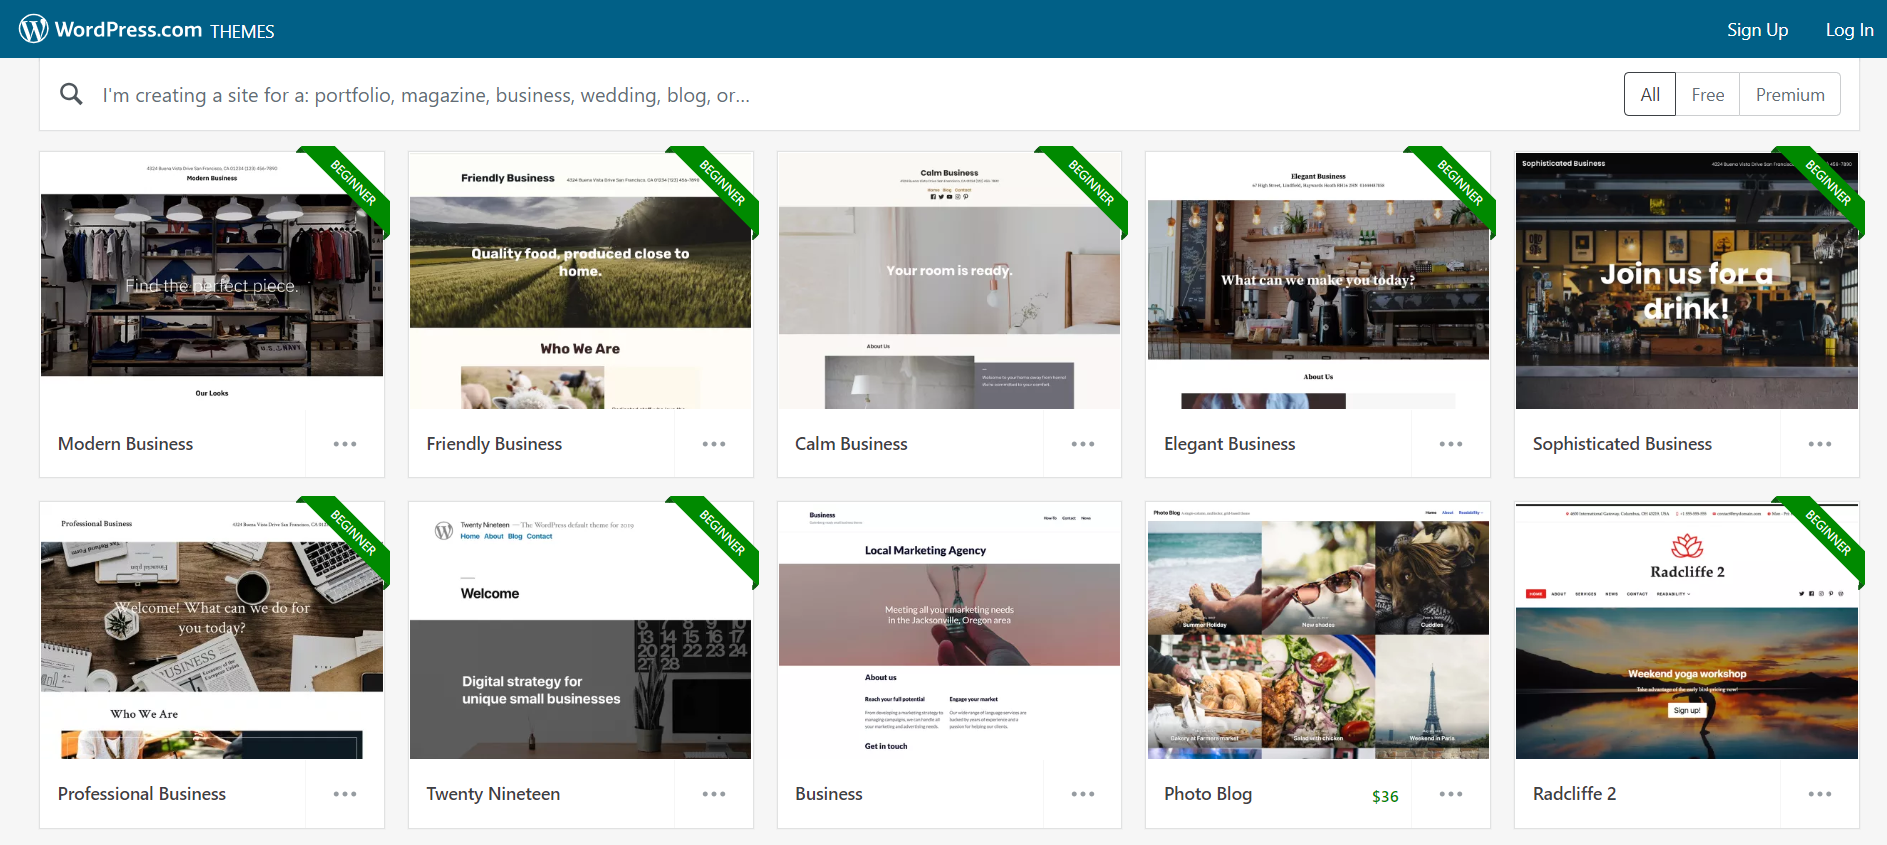 Website Themes   How To Use WordPress: 9 Skills You Absolutely Need To Know